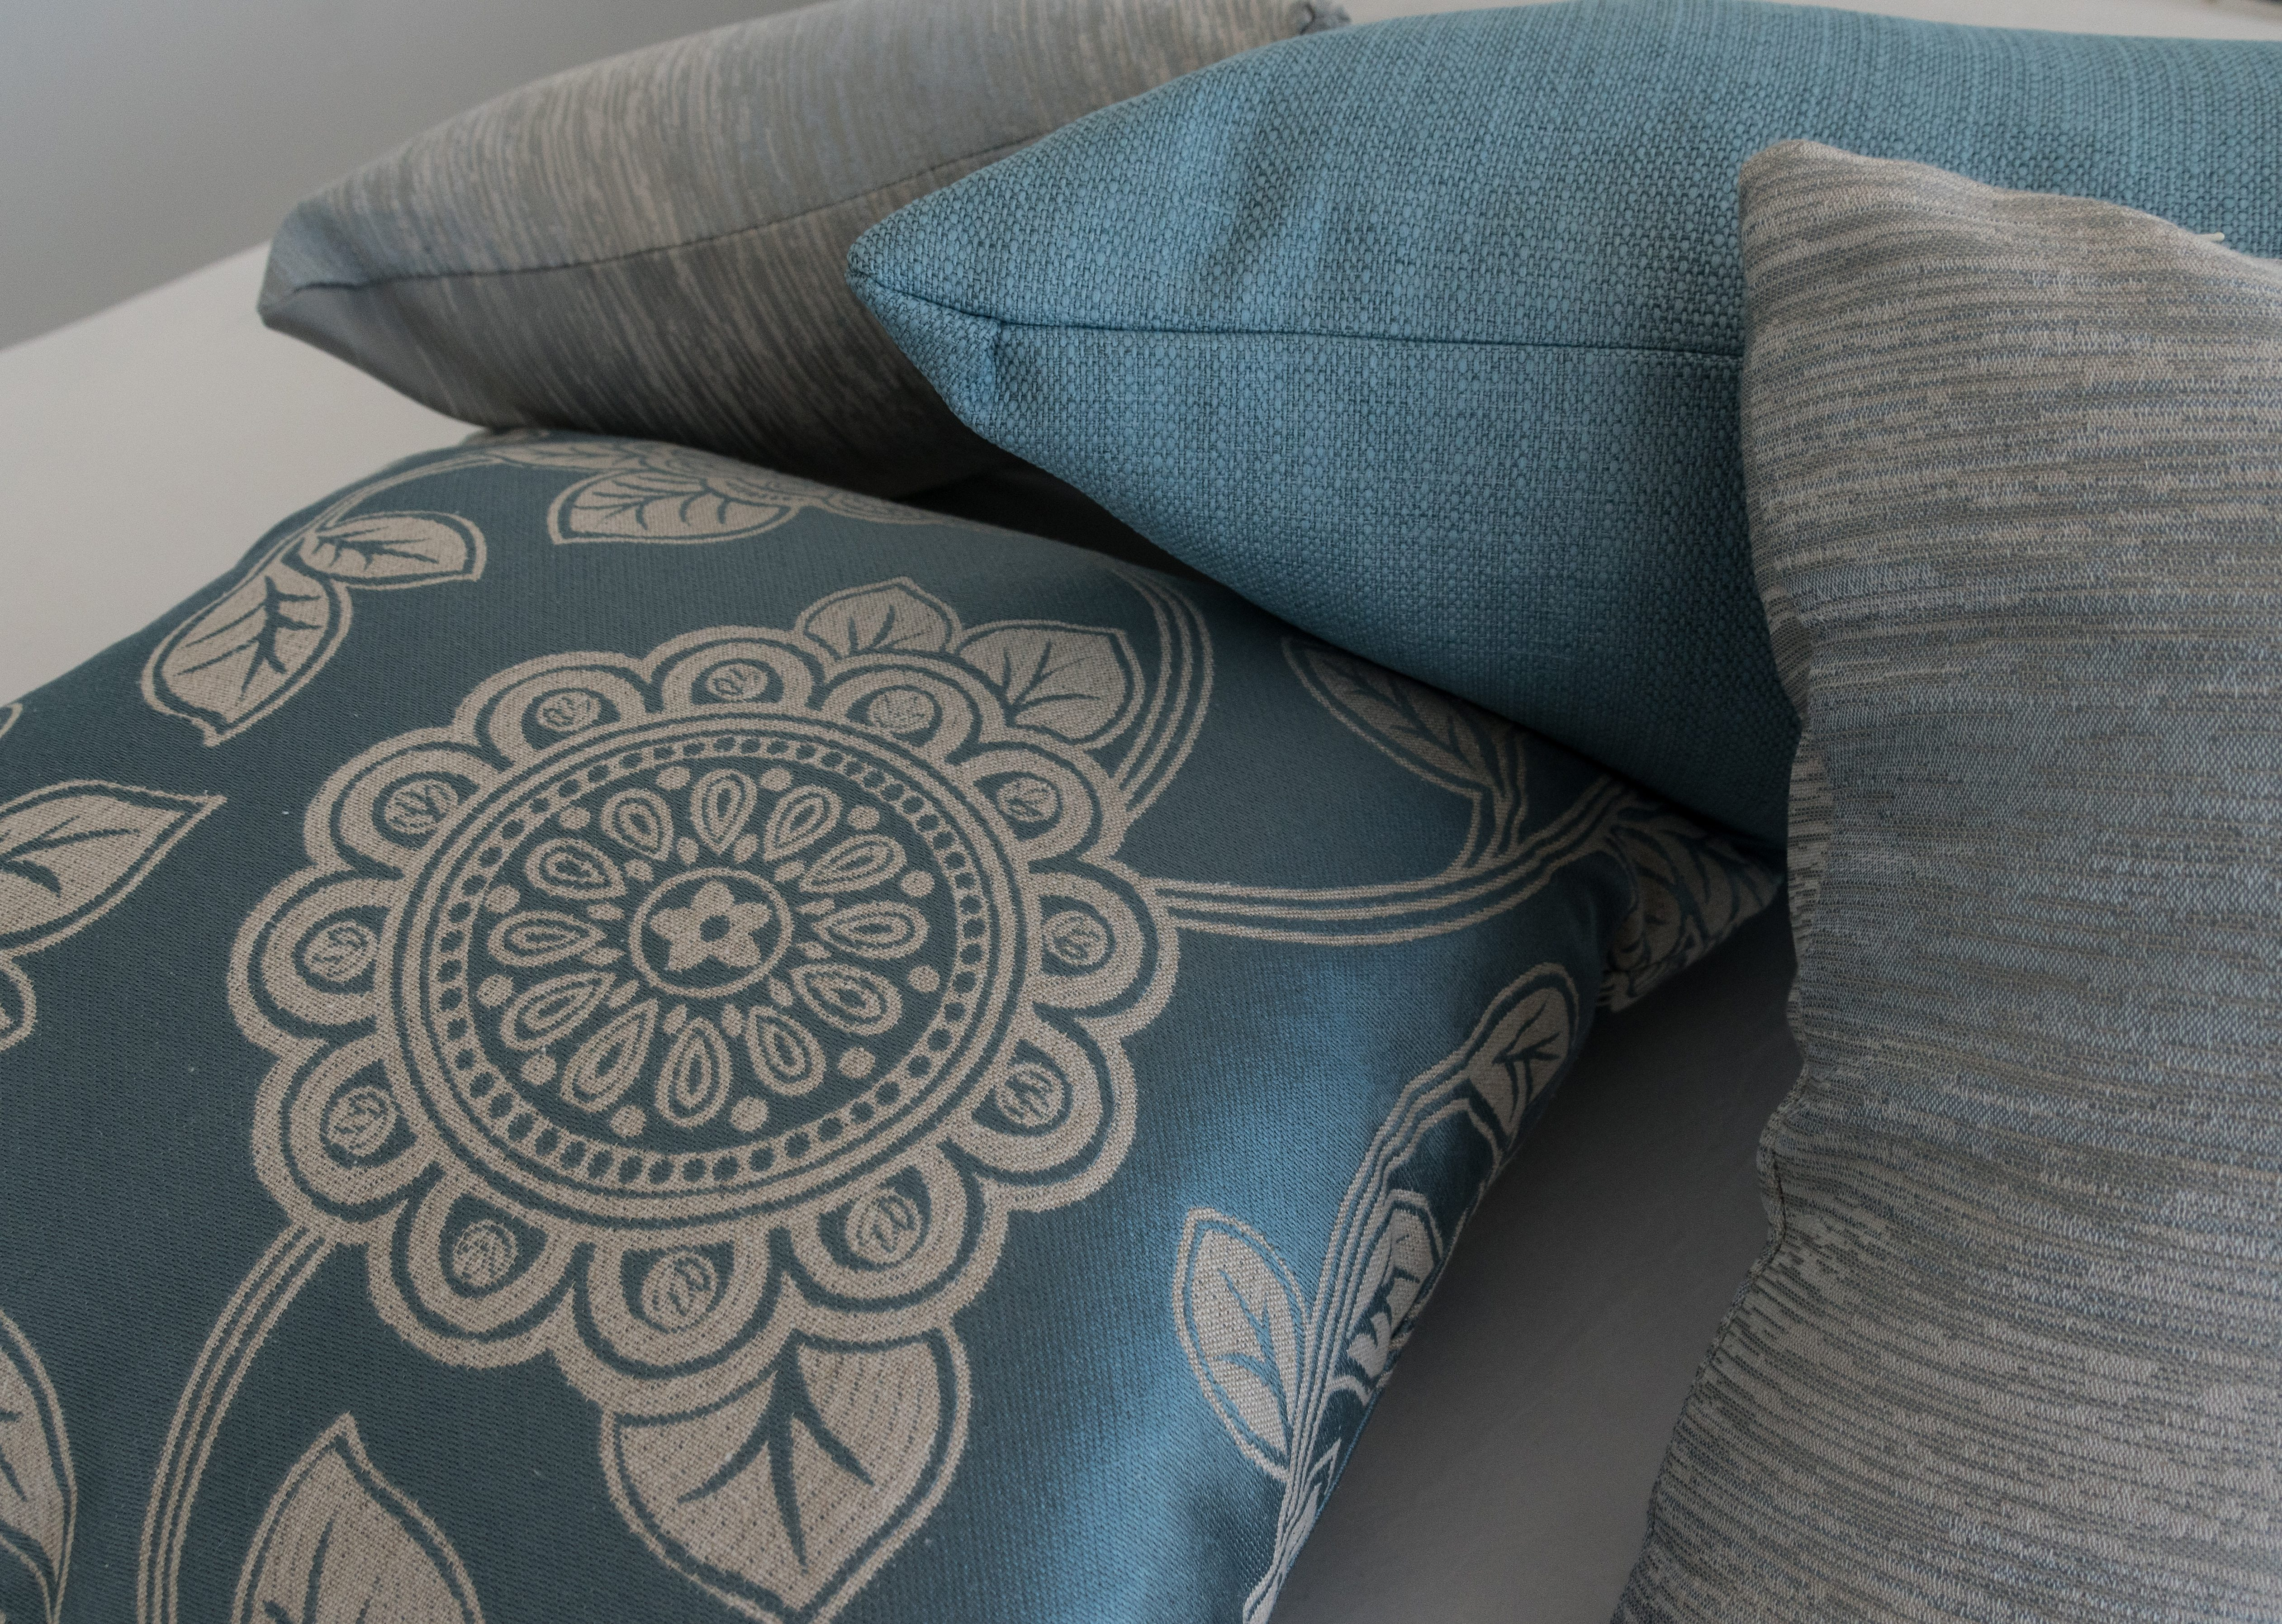 Matching custom cushions